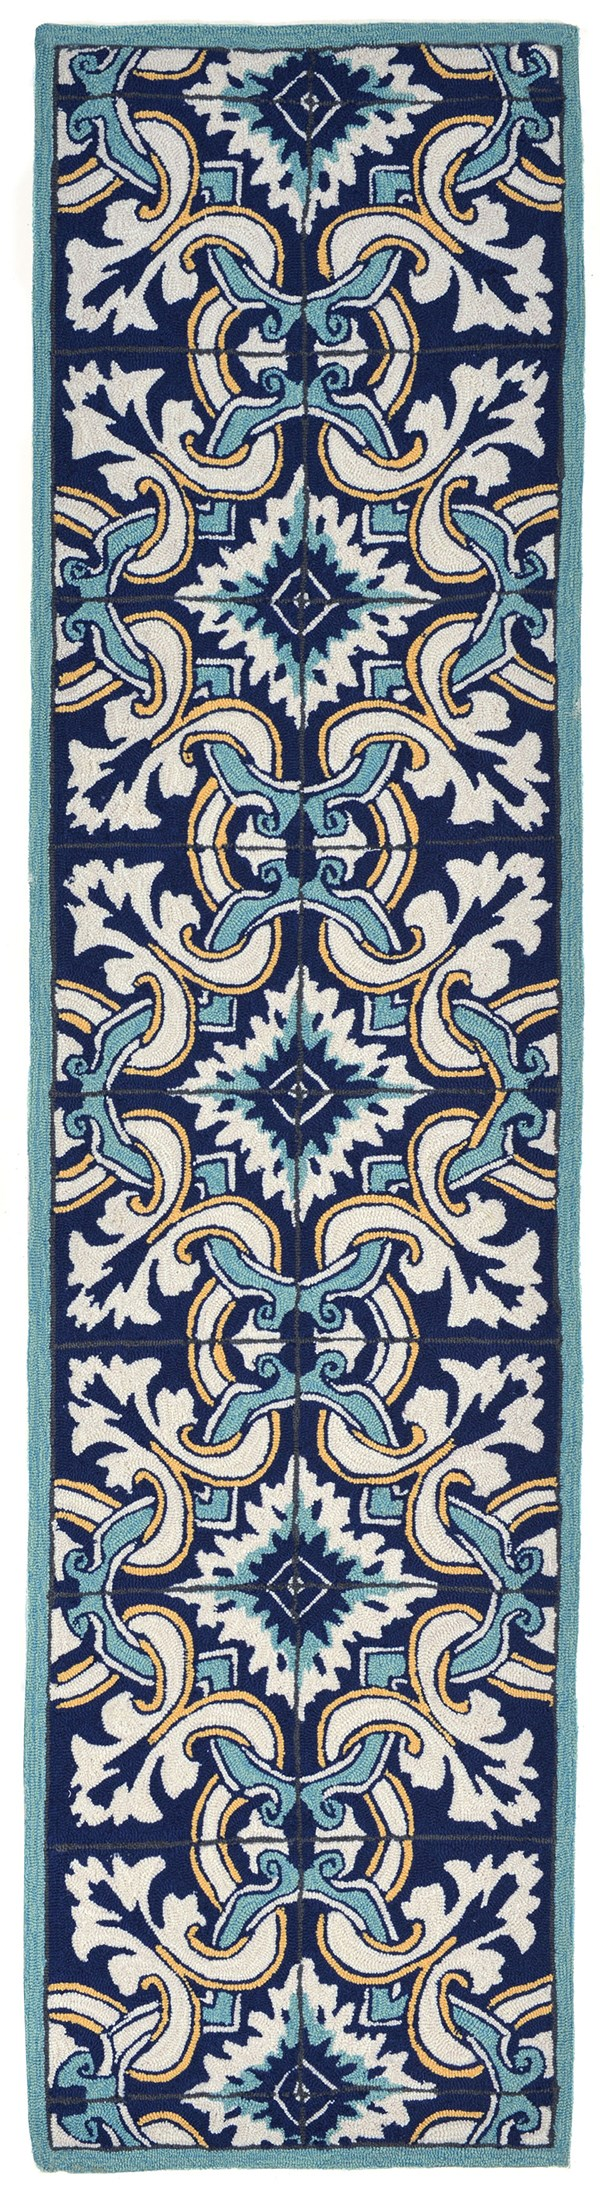 Liora Manne Ravella Floral Tile Rugs Rugs Direct